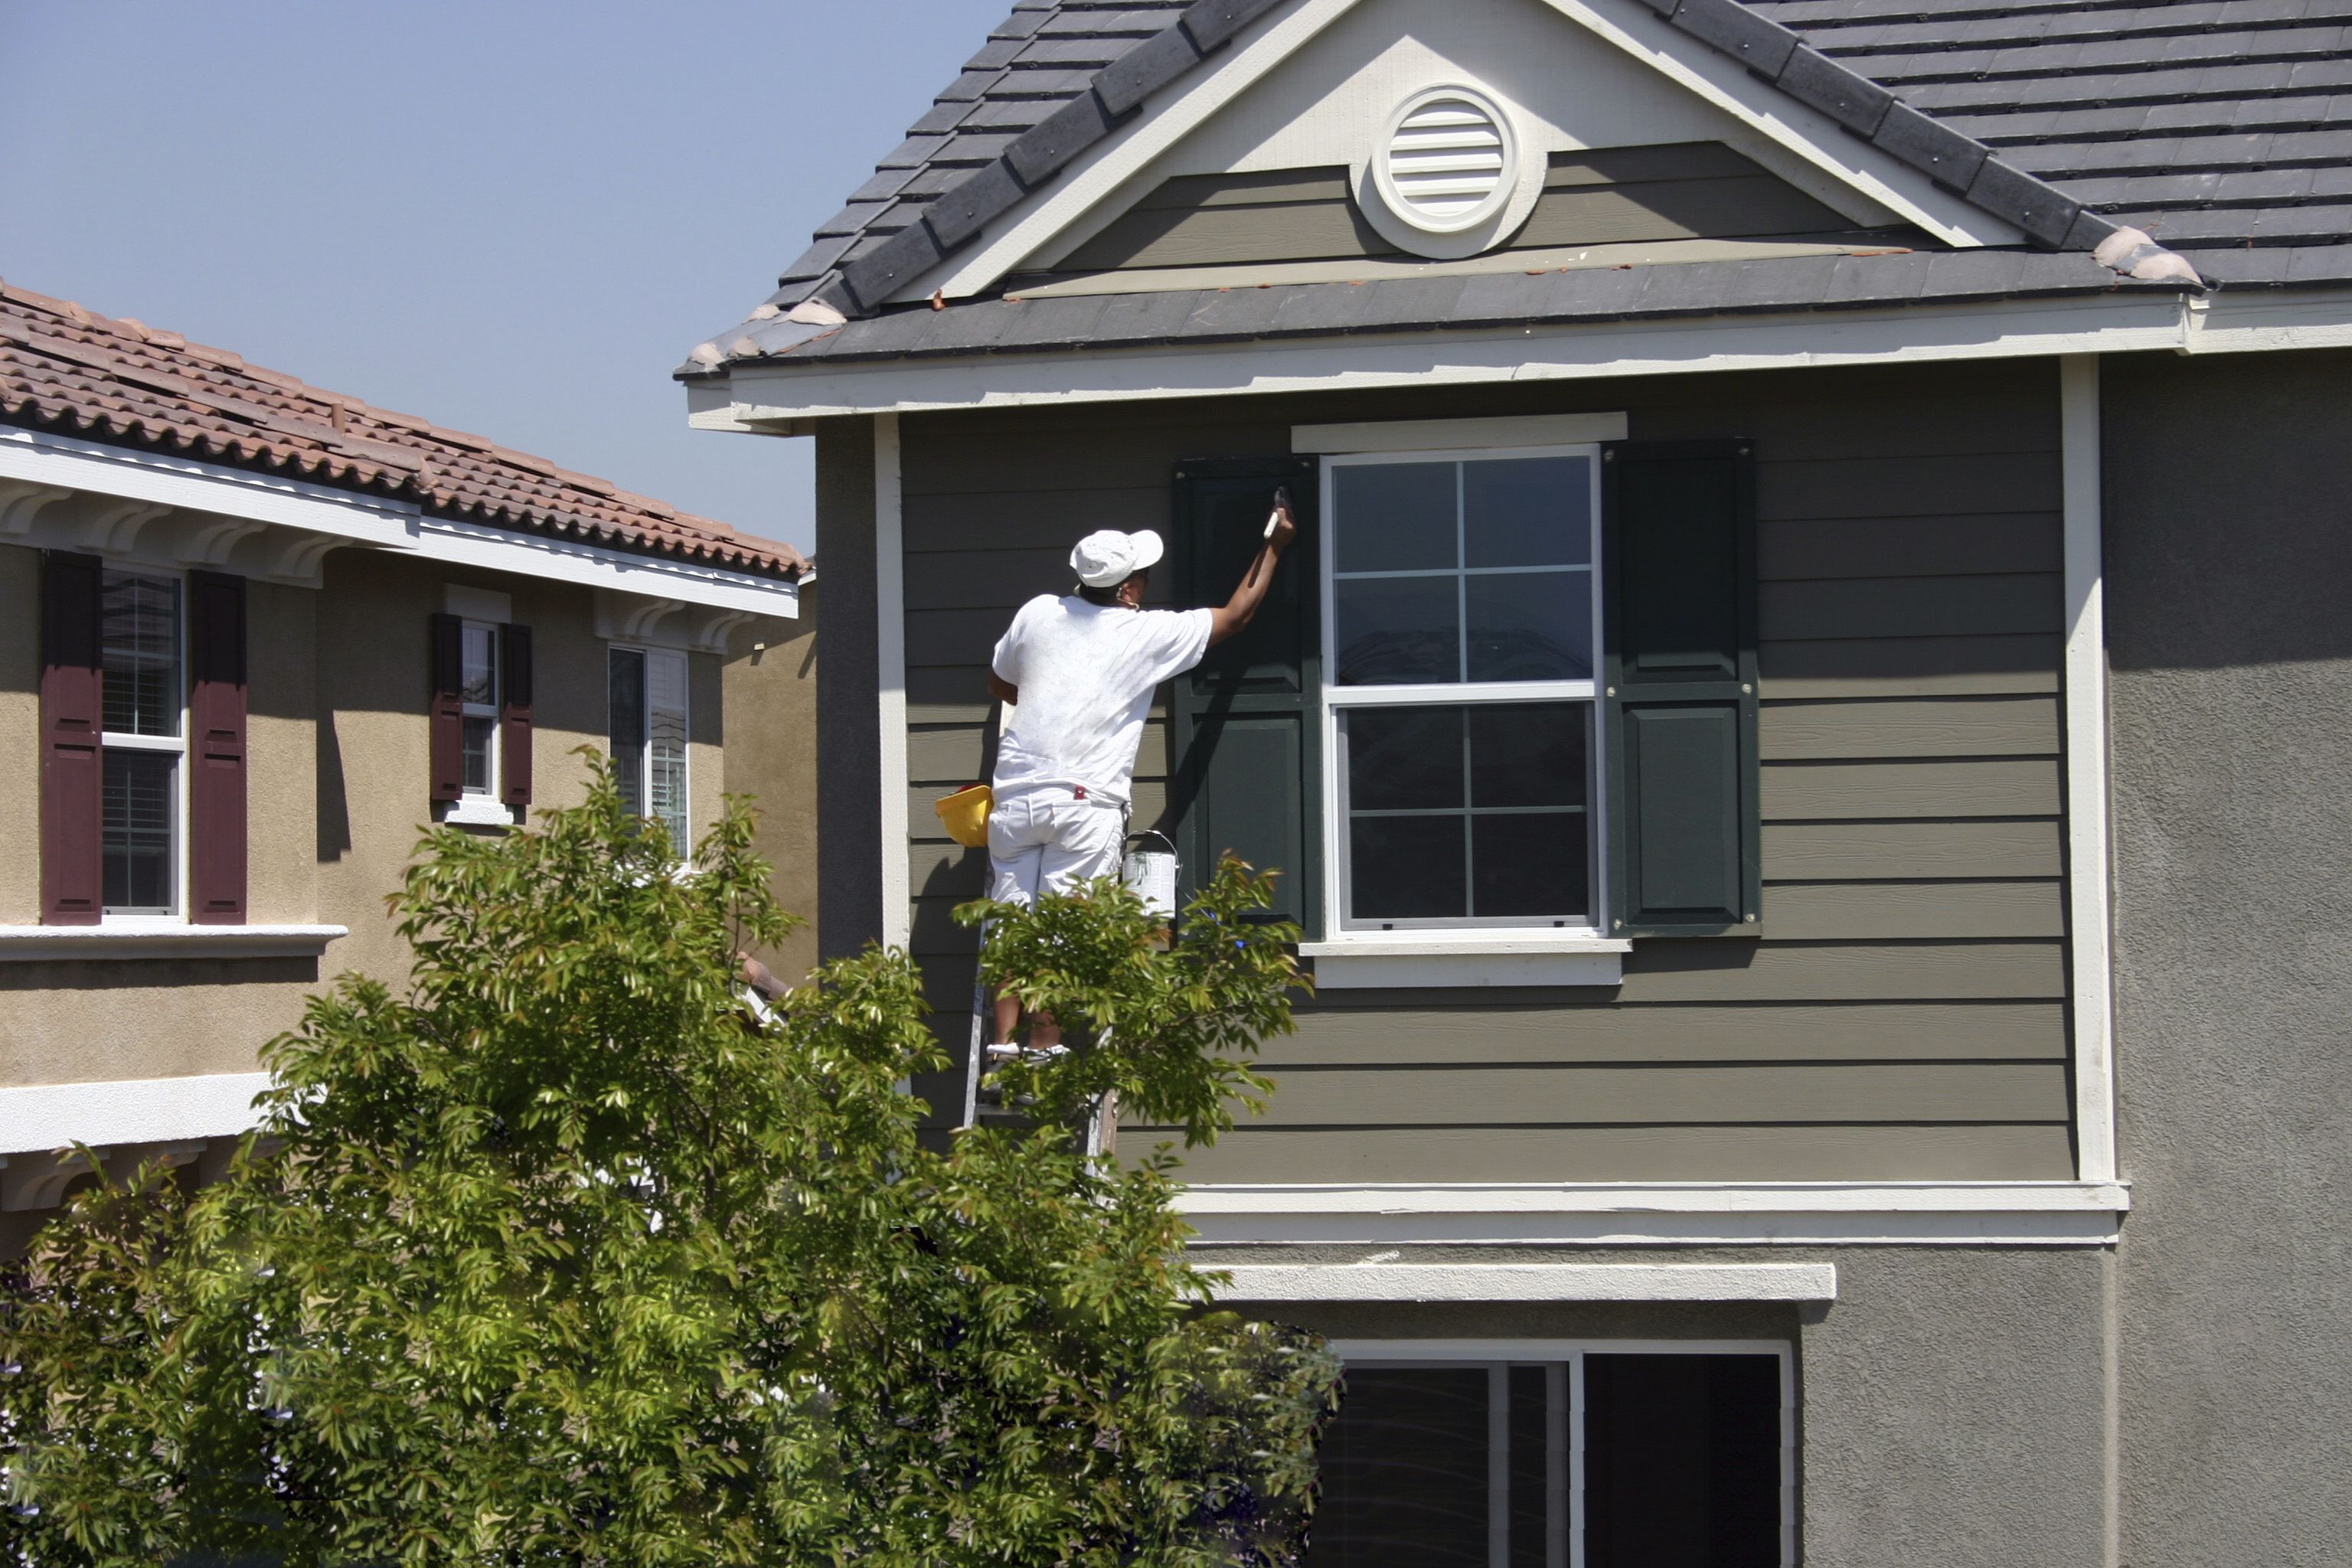 All About Hardie Board And Fiber Cement Siding